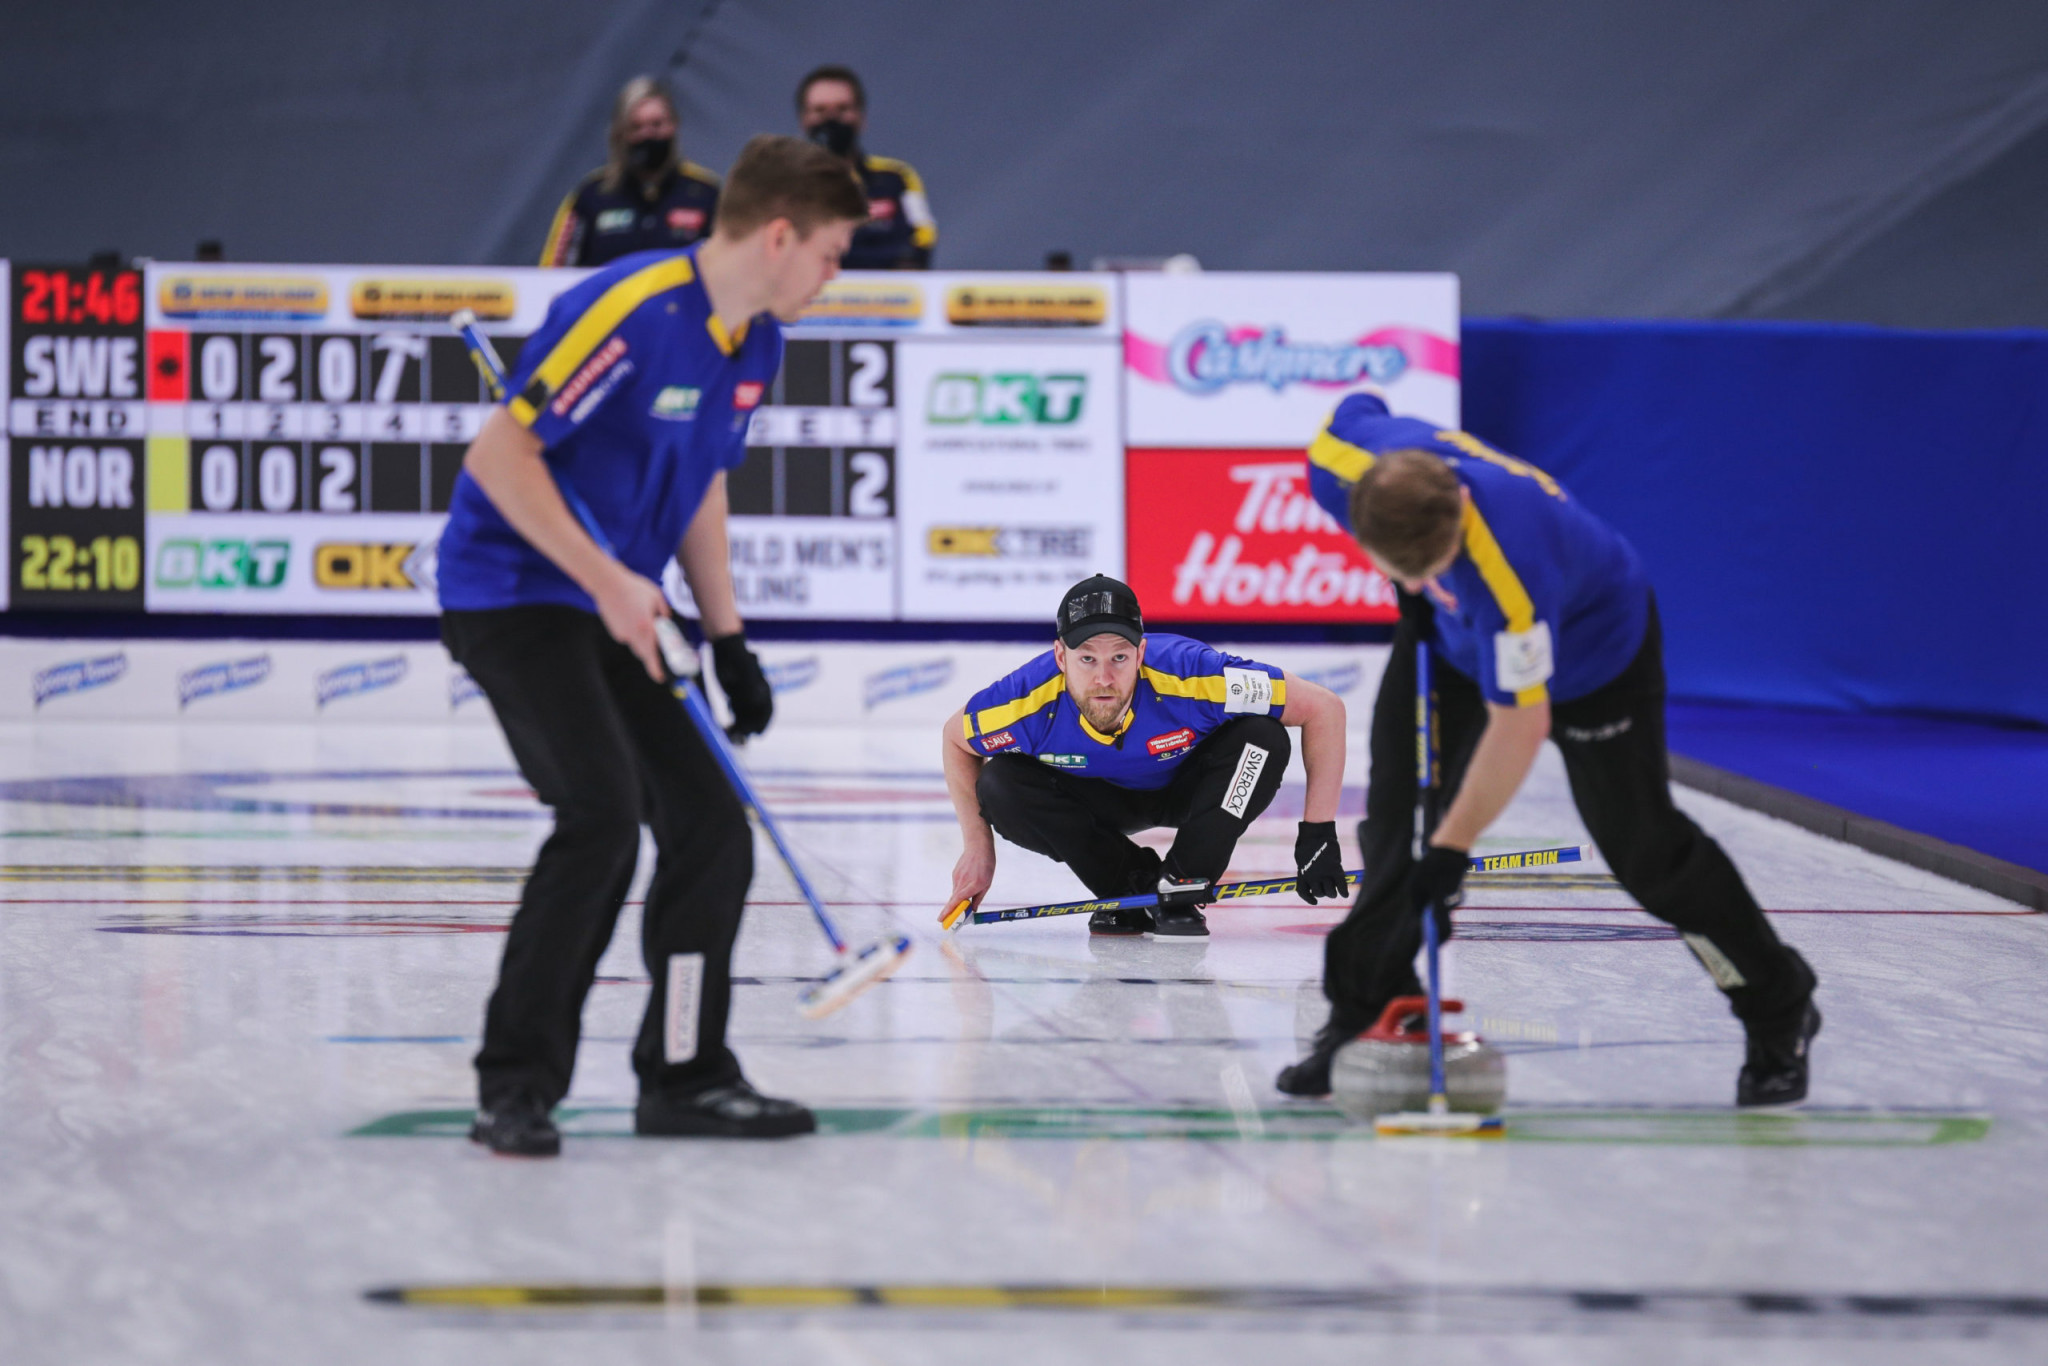 Holders Sweden win decisive matches at World Men's Curling Championship